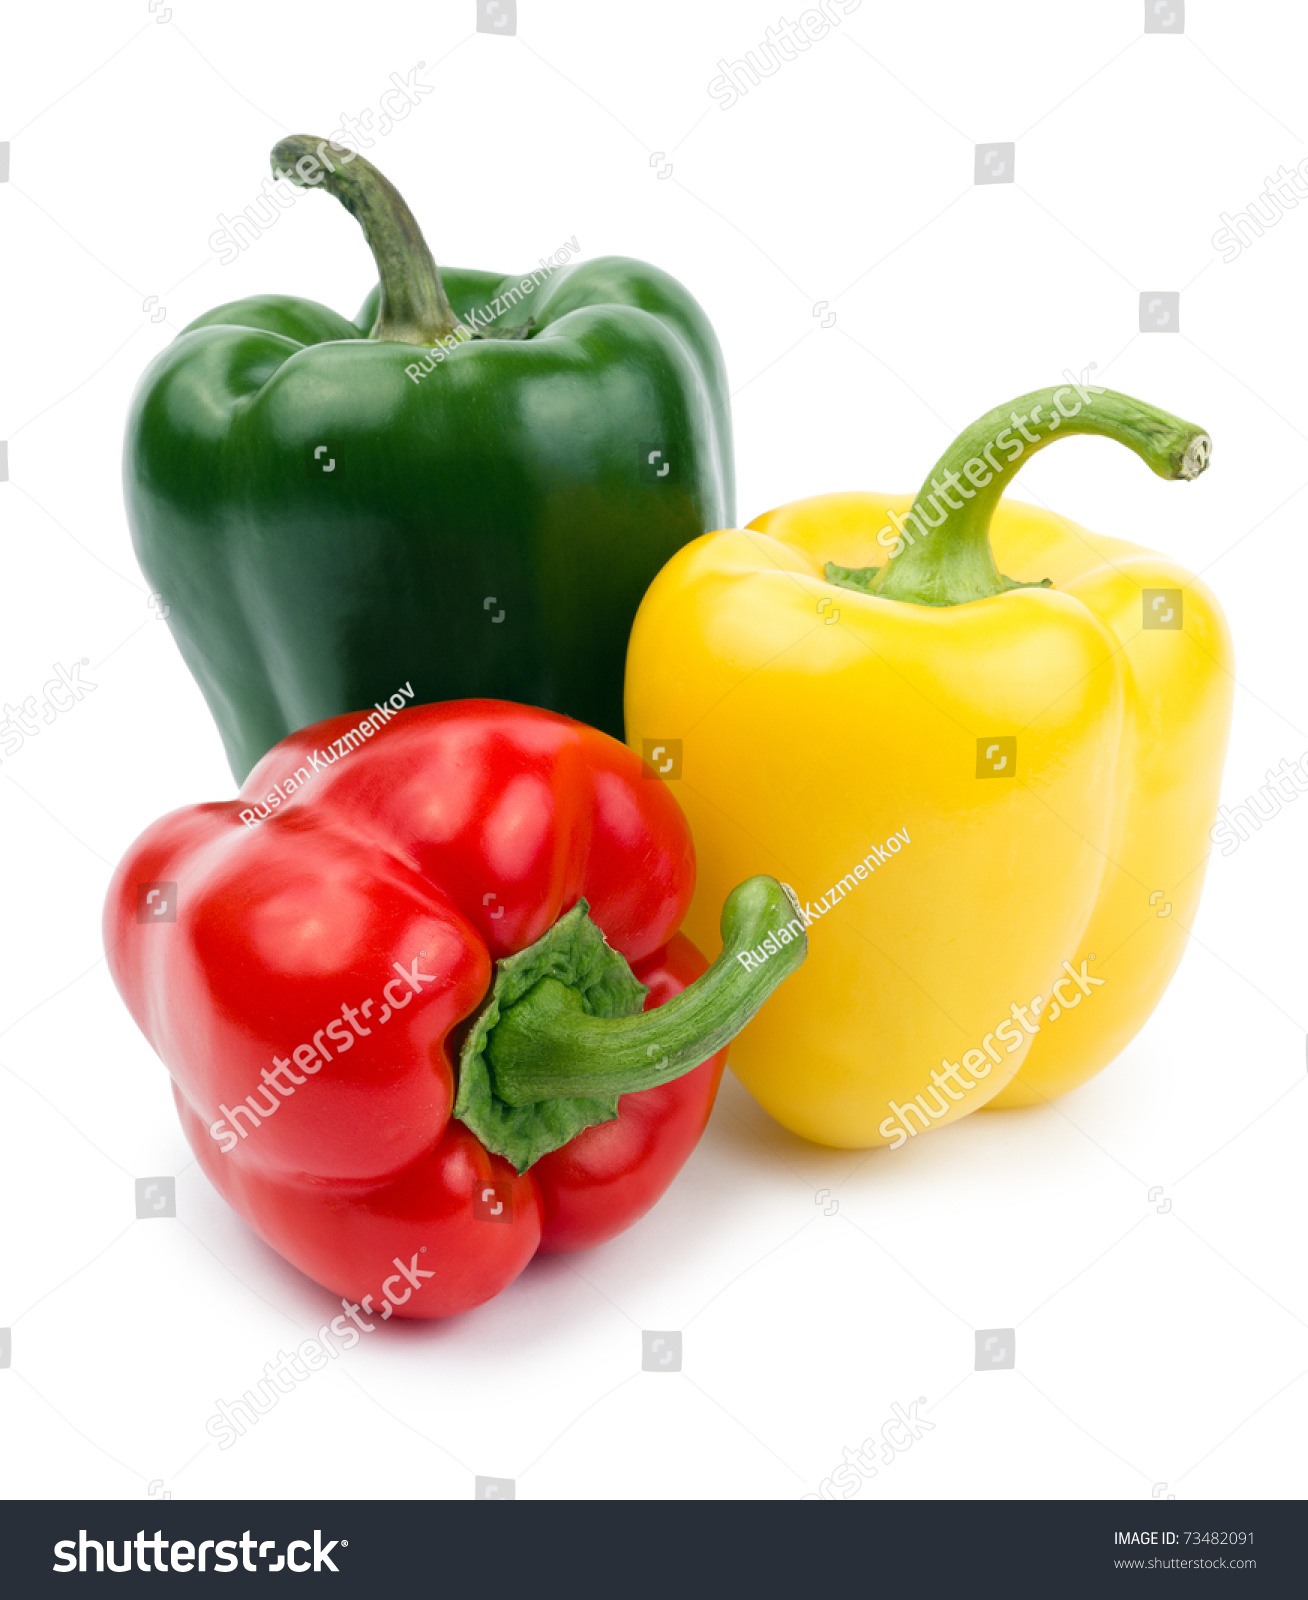 Colored Paprika Pepper Isolated On White Stock Photo ...